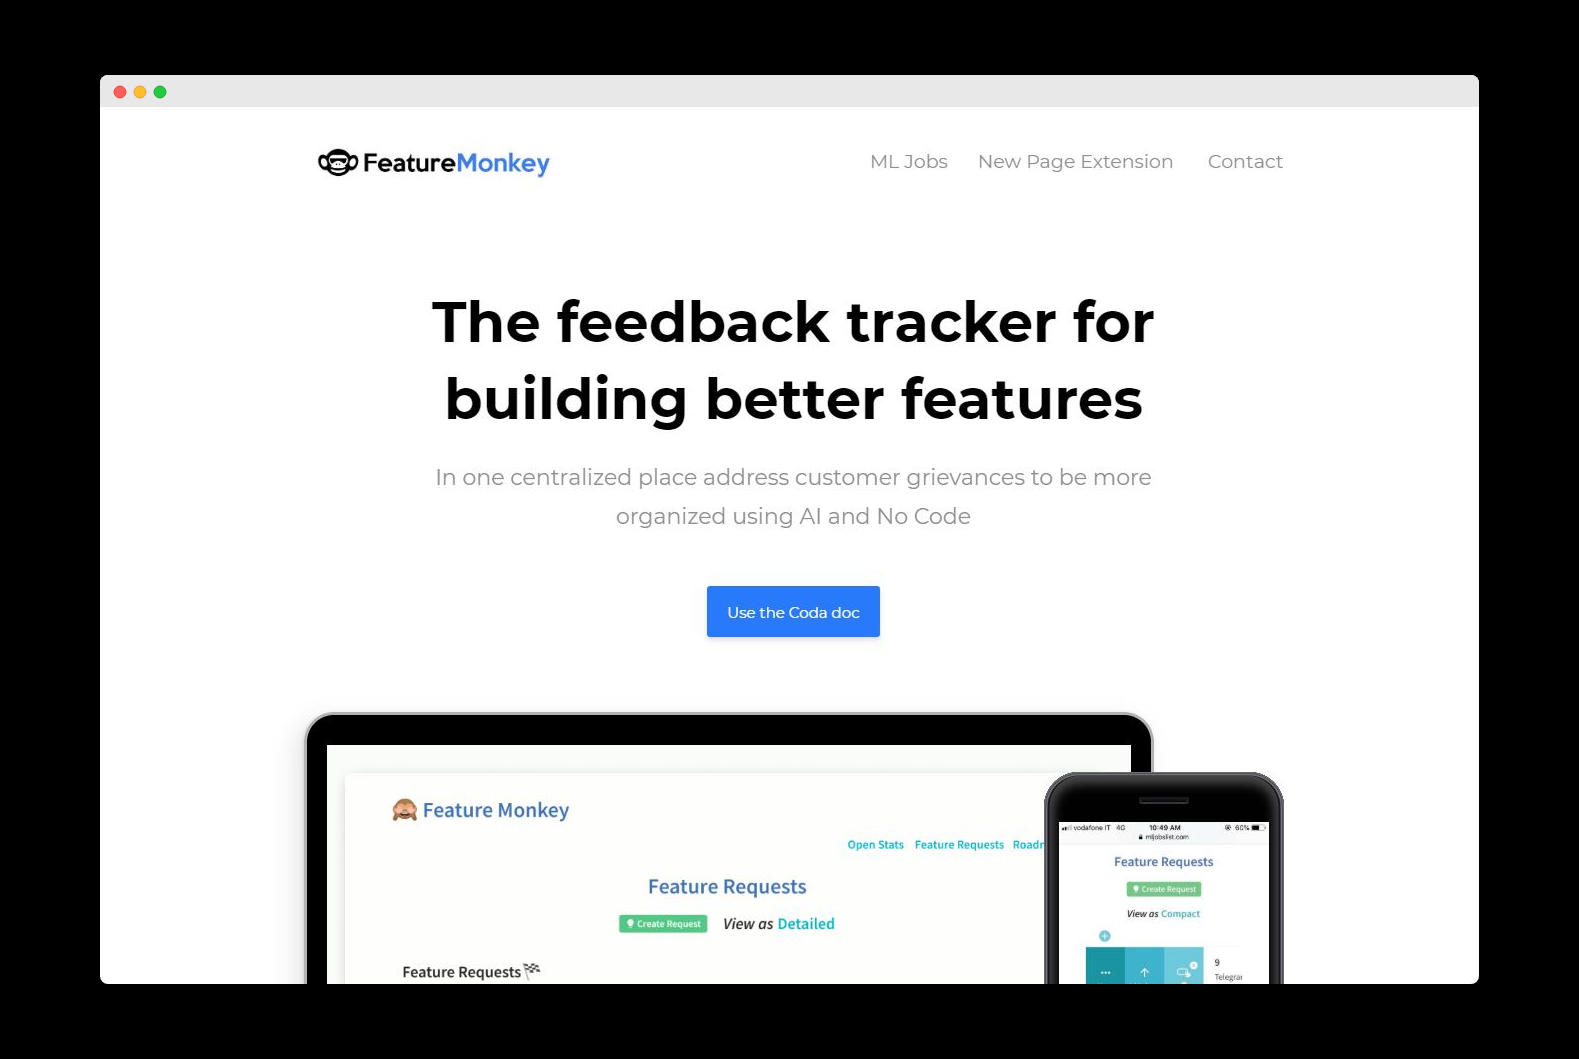 The feedback tracker for building better features